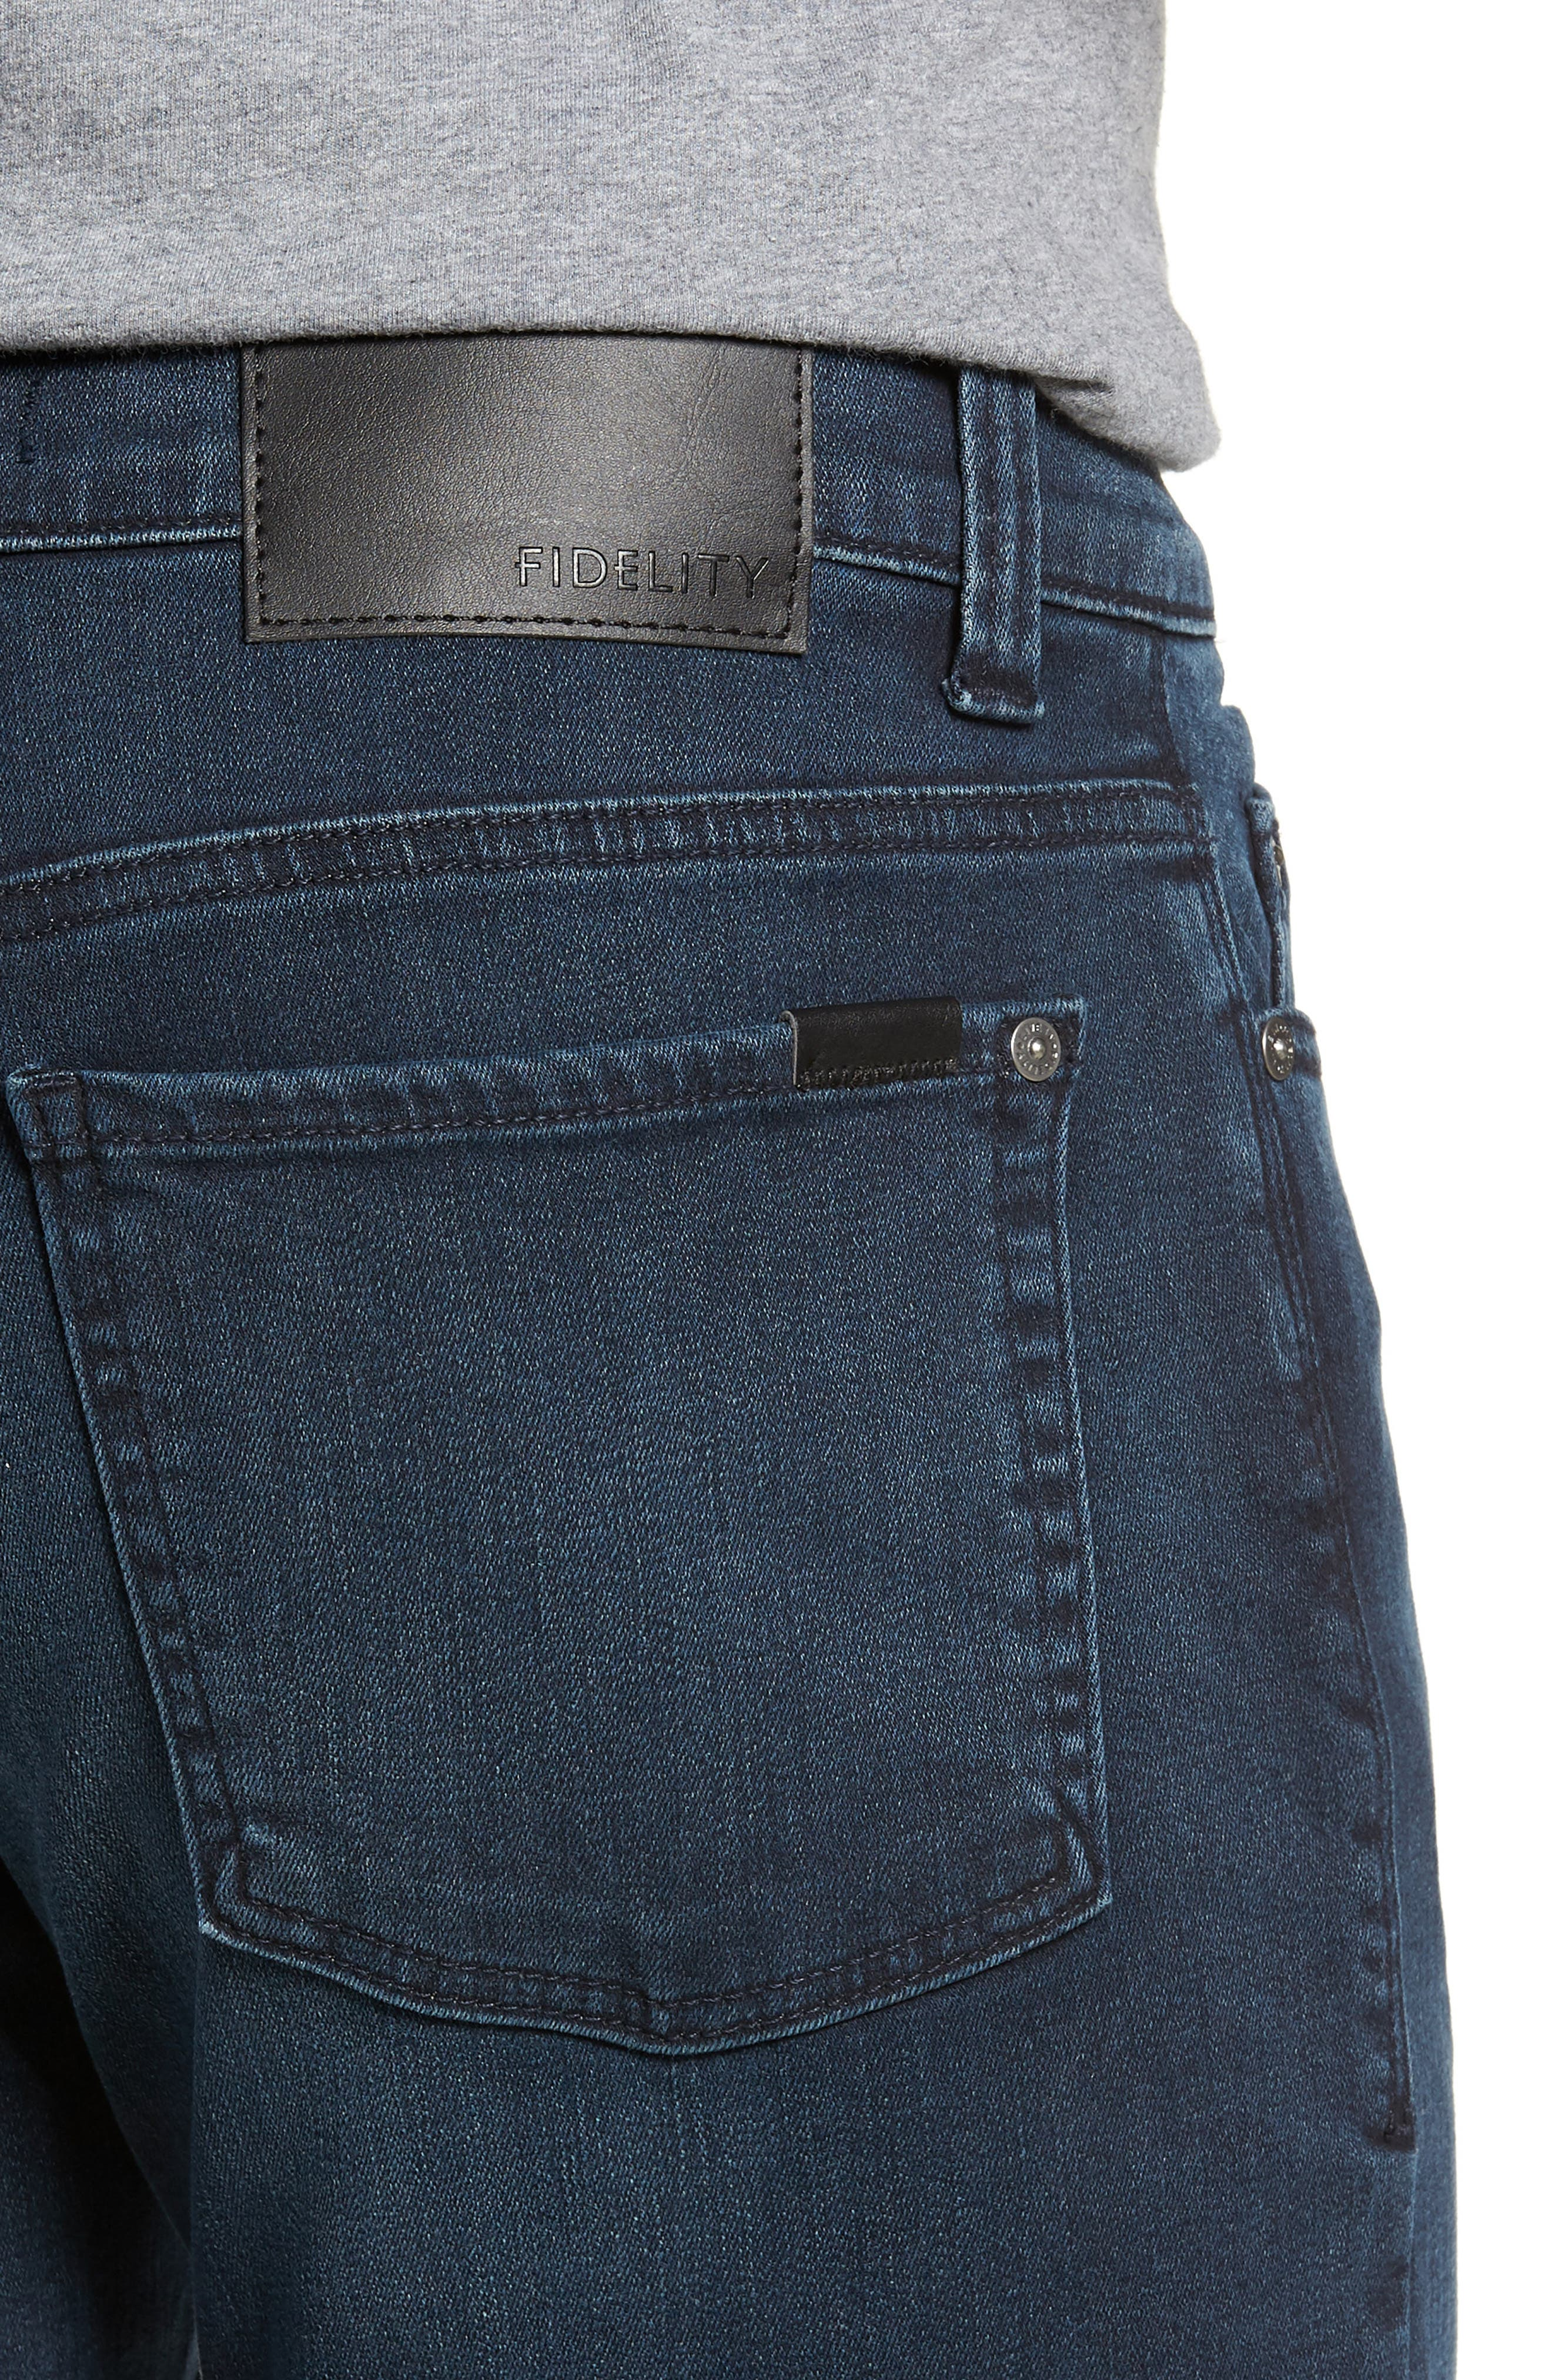 50-11 Relaxed Fit Jeans,                             Alternate thumbnail 4, color,                             MILLI BLUE